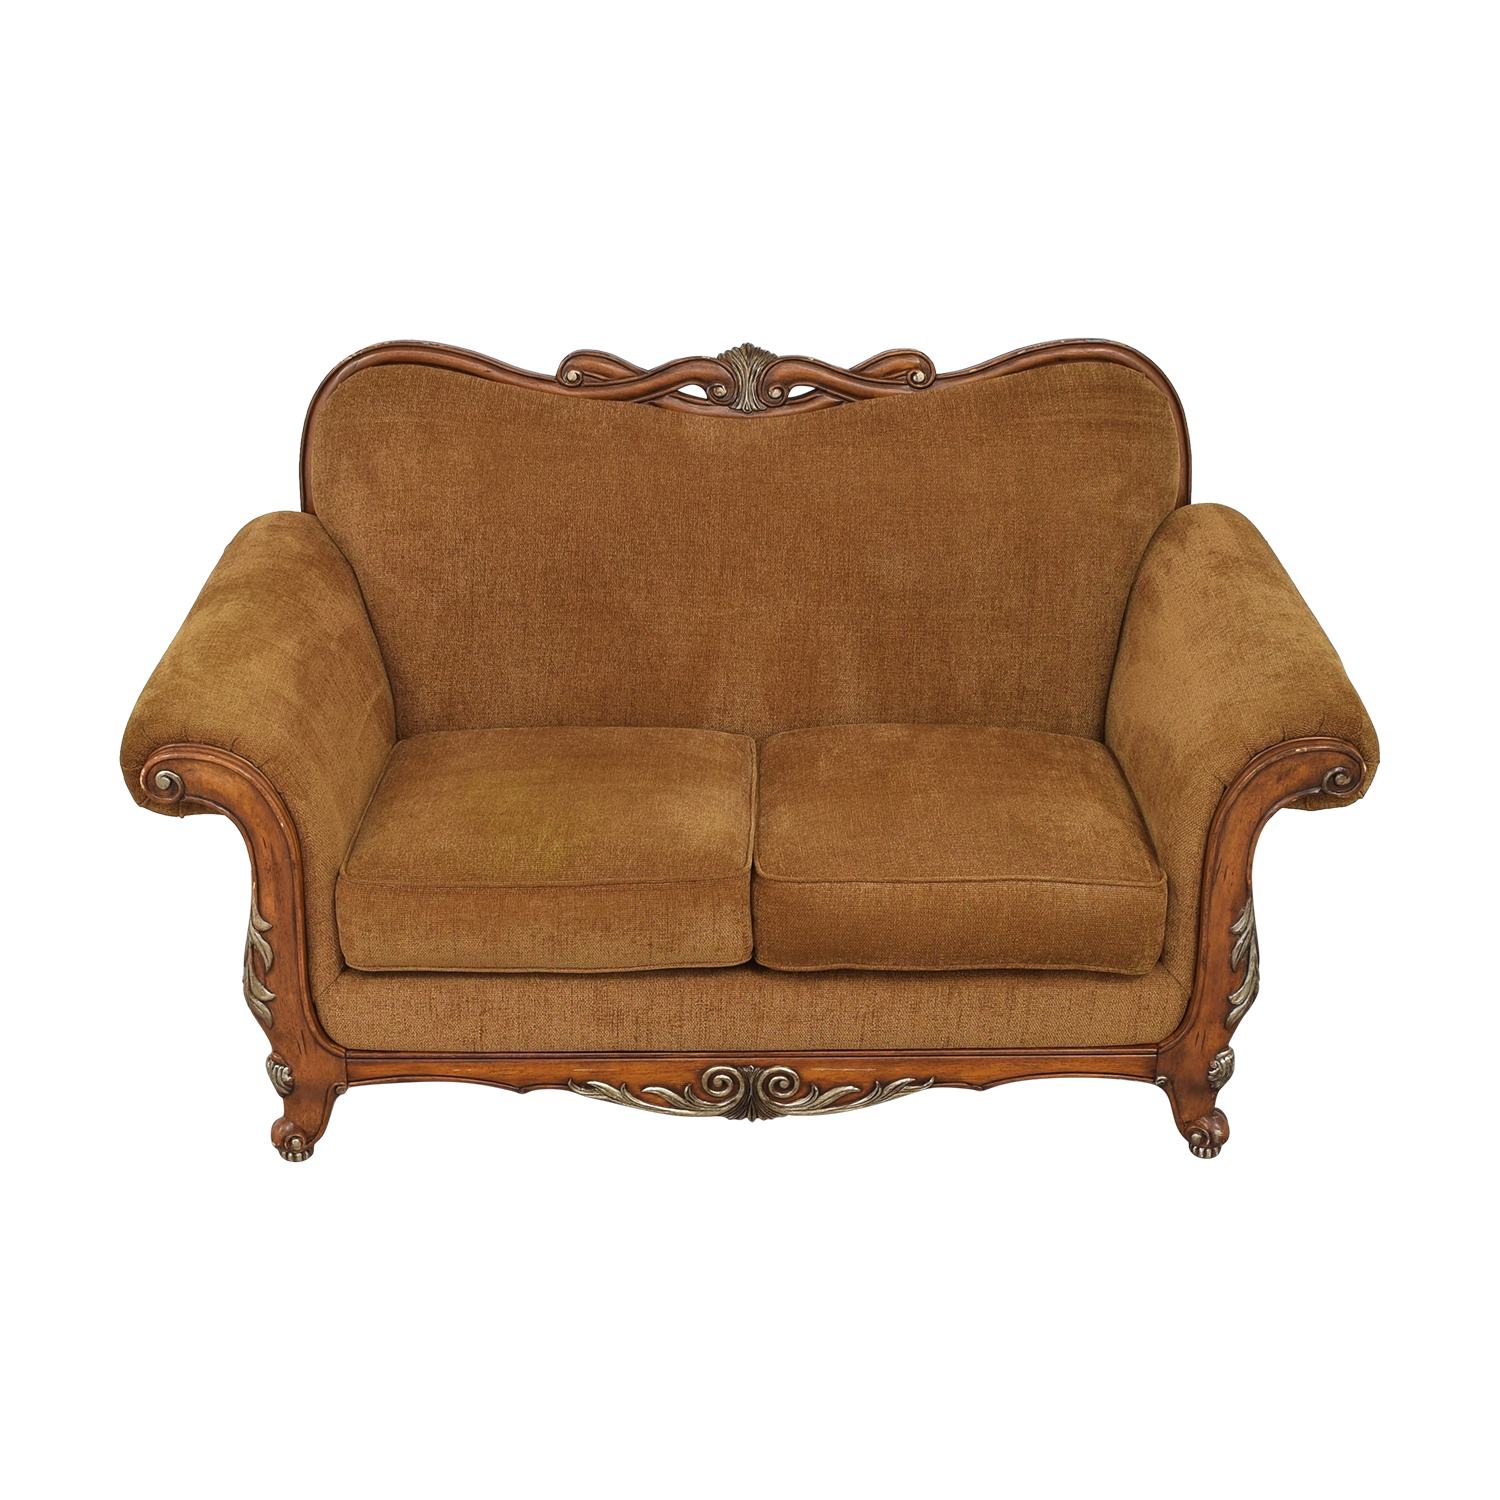 Cindy Crawford Home Cindy Crawford Home Loveseat for sale